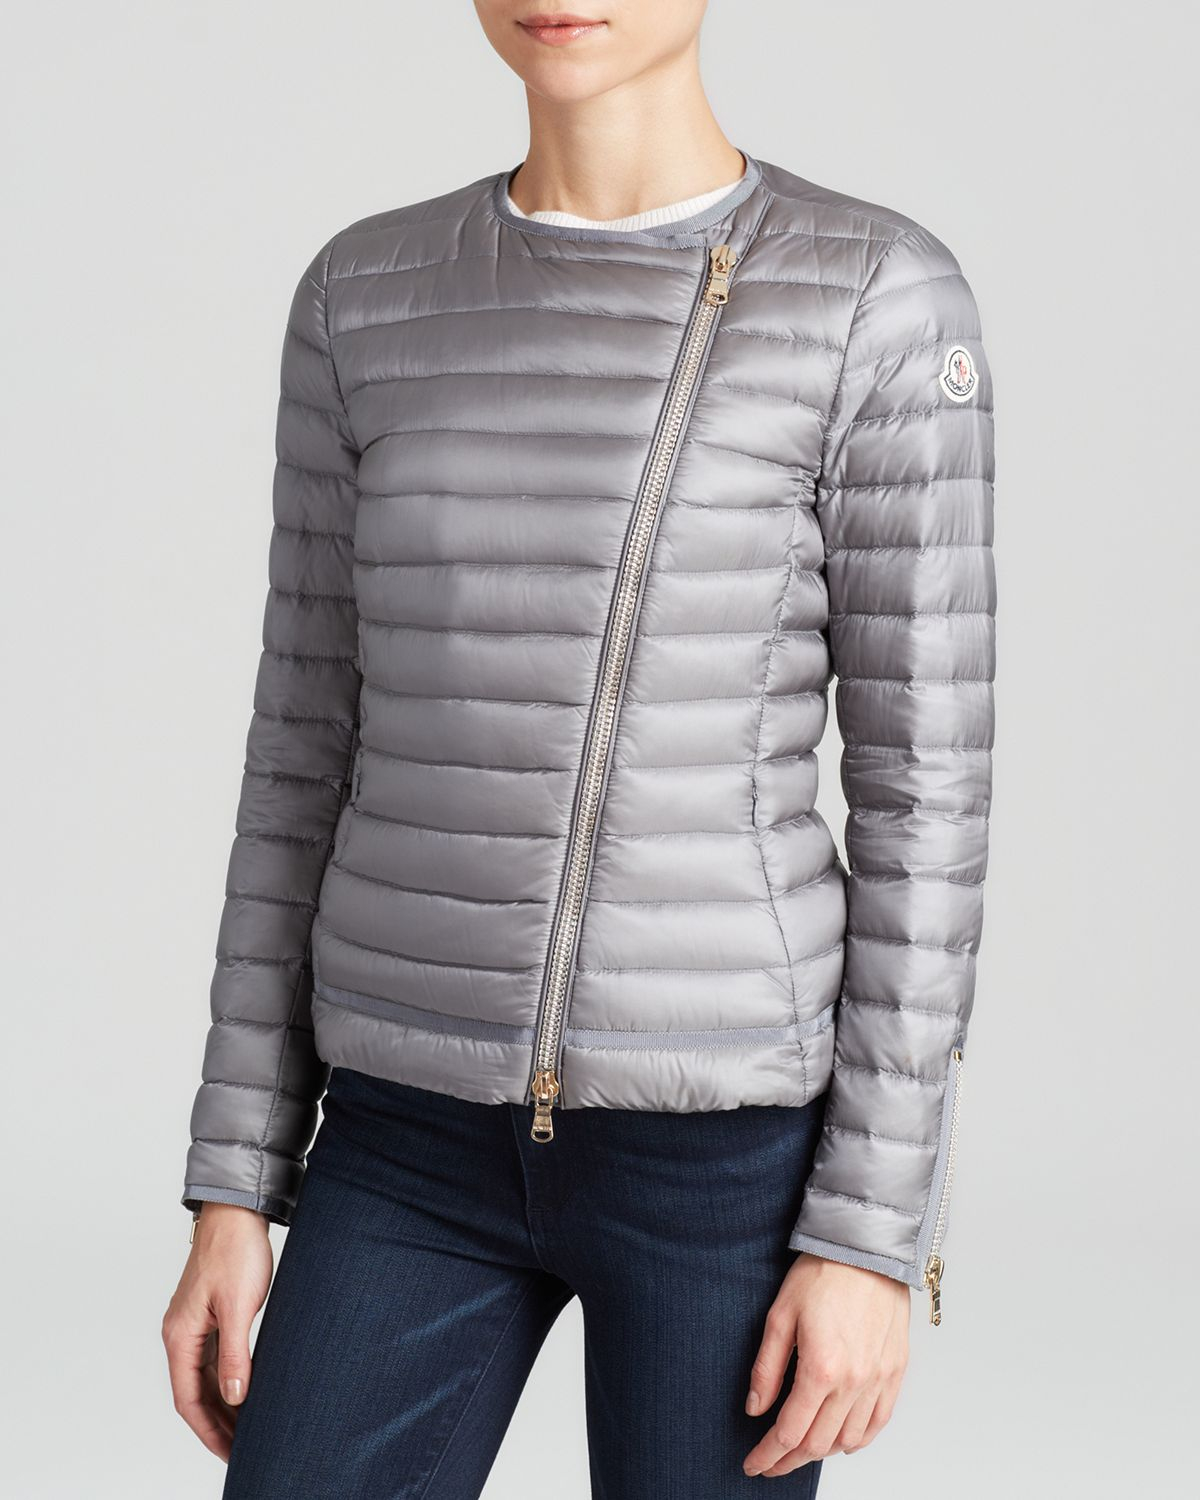 3a46963dab2 Moncler Jacket - Amey Asymmetrical Collarless Packable Down in Gray ...